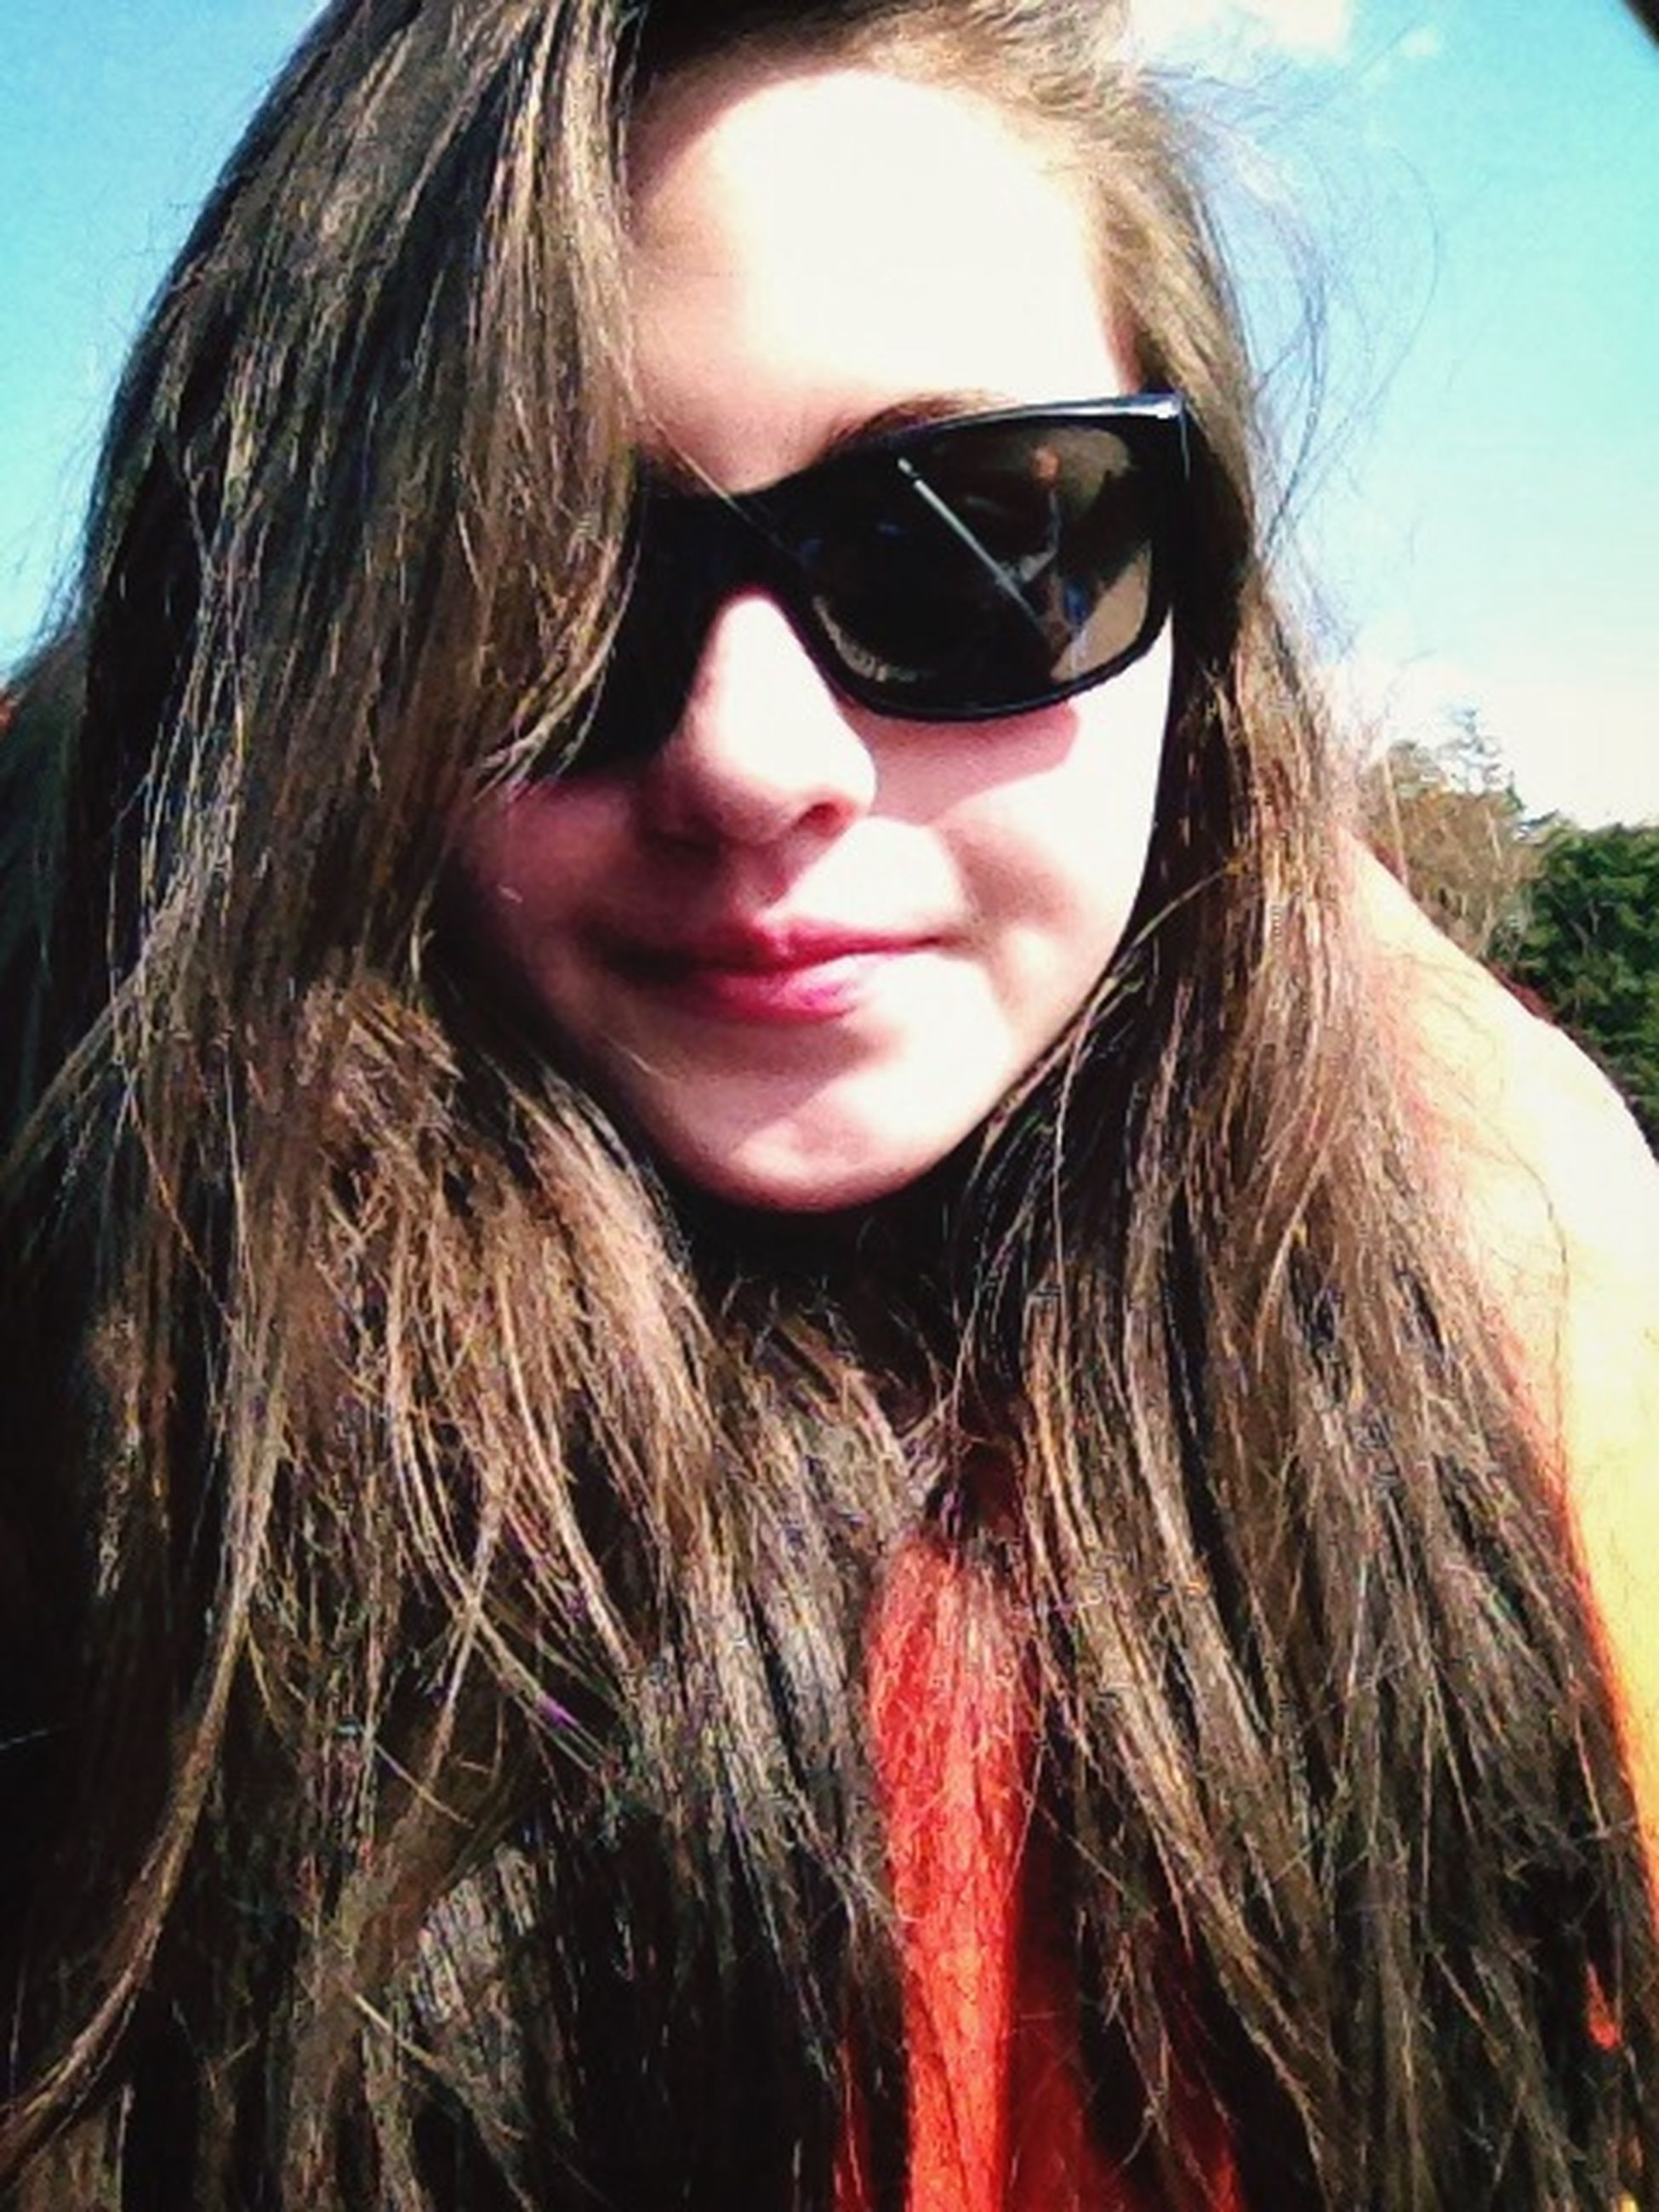 headshot, person, young women, close-up, lifestyles, young adult, long hair, looking at camera, leisure activity, portrait, head and shoulders, sunglasses, blond hair, human face, front view, brown hair, human hair